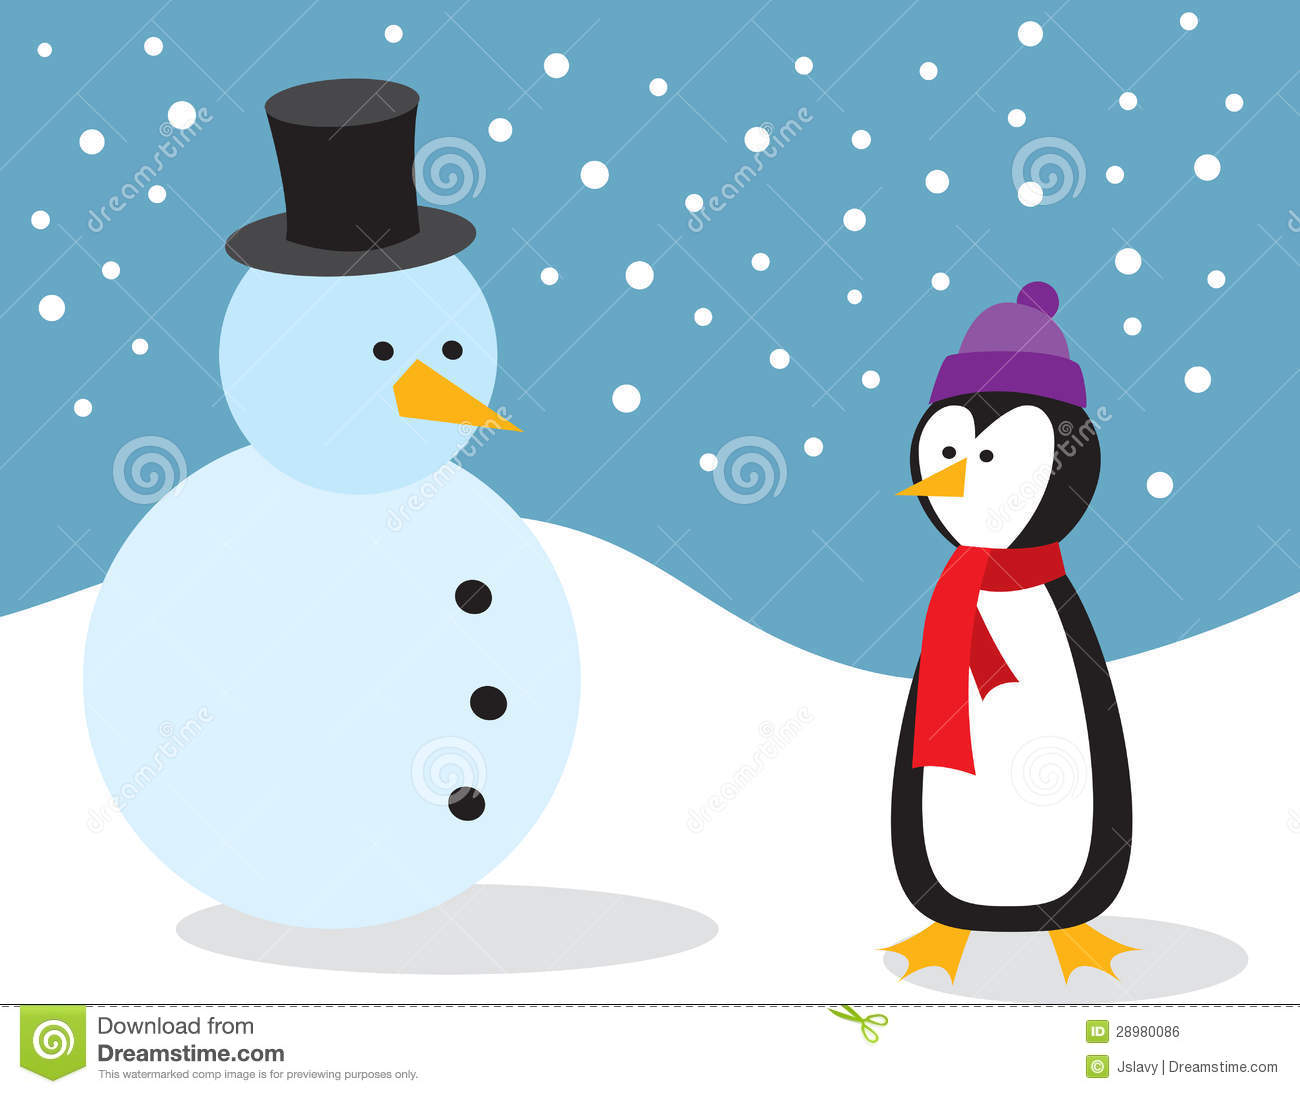 Car Wallpaper Themes Penguin With Snowman Royalty Free Stock Image Image